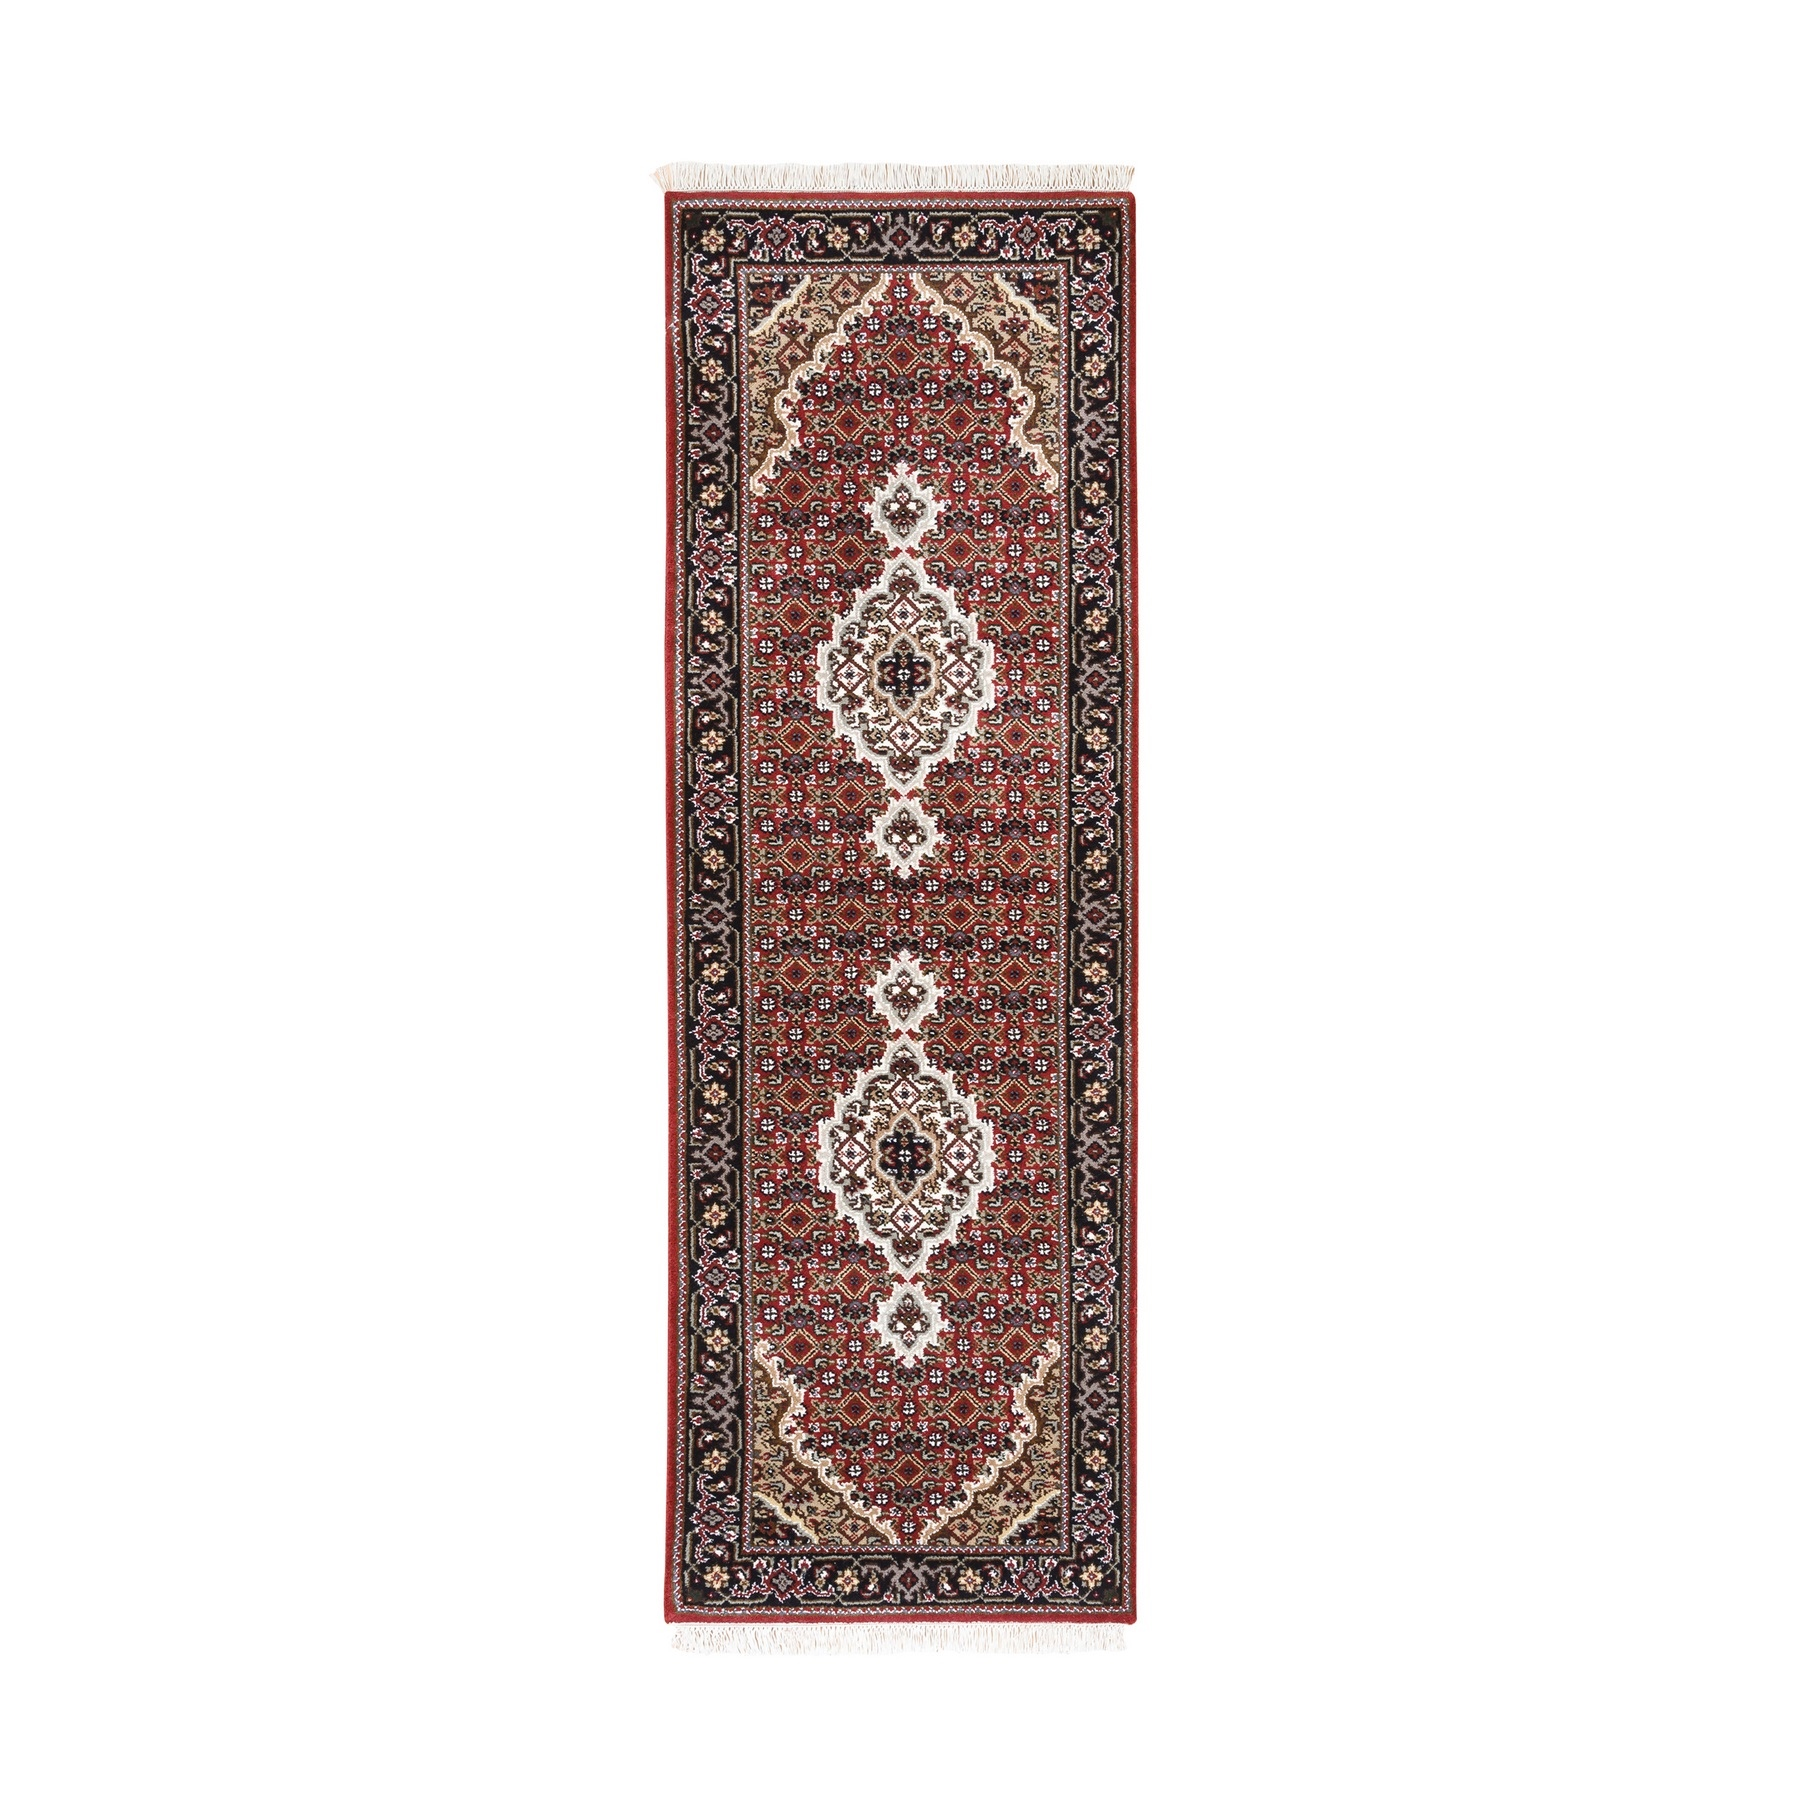 2'x6' Red Tabriz Mahi Fish Medallion Design Wool And Silk Hand Woven Oriental Runner Rug